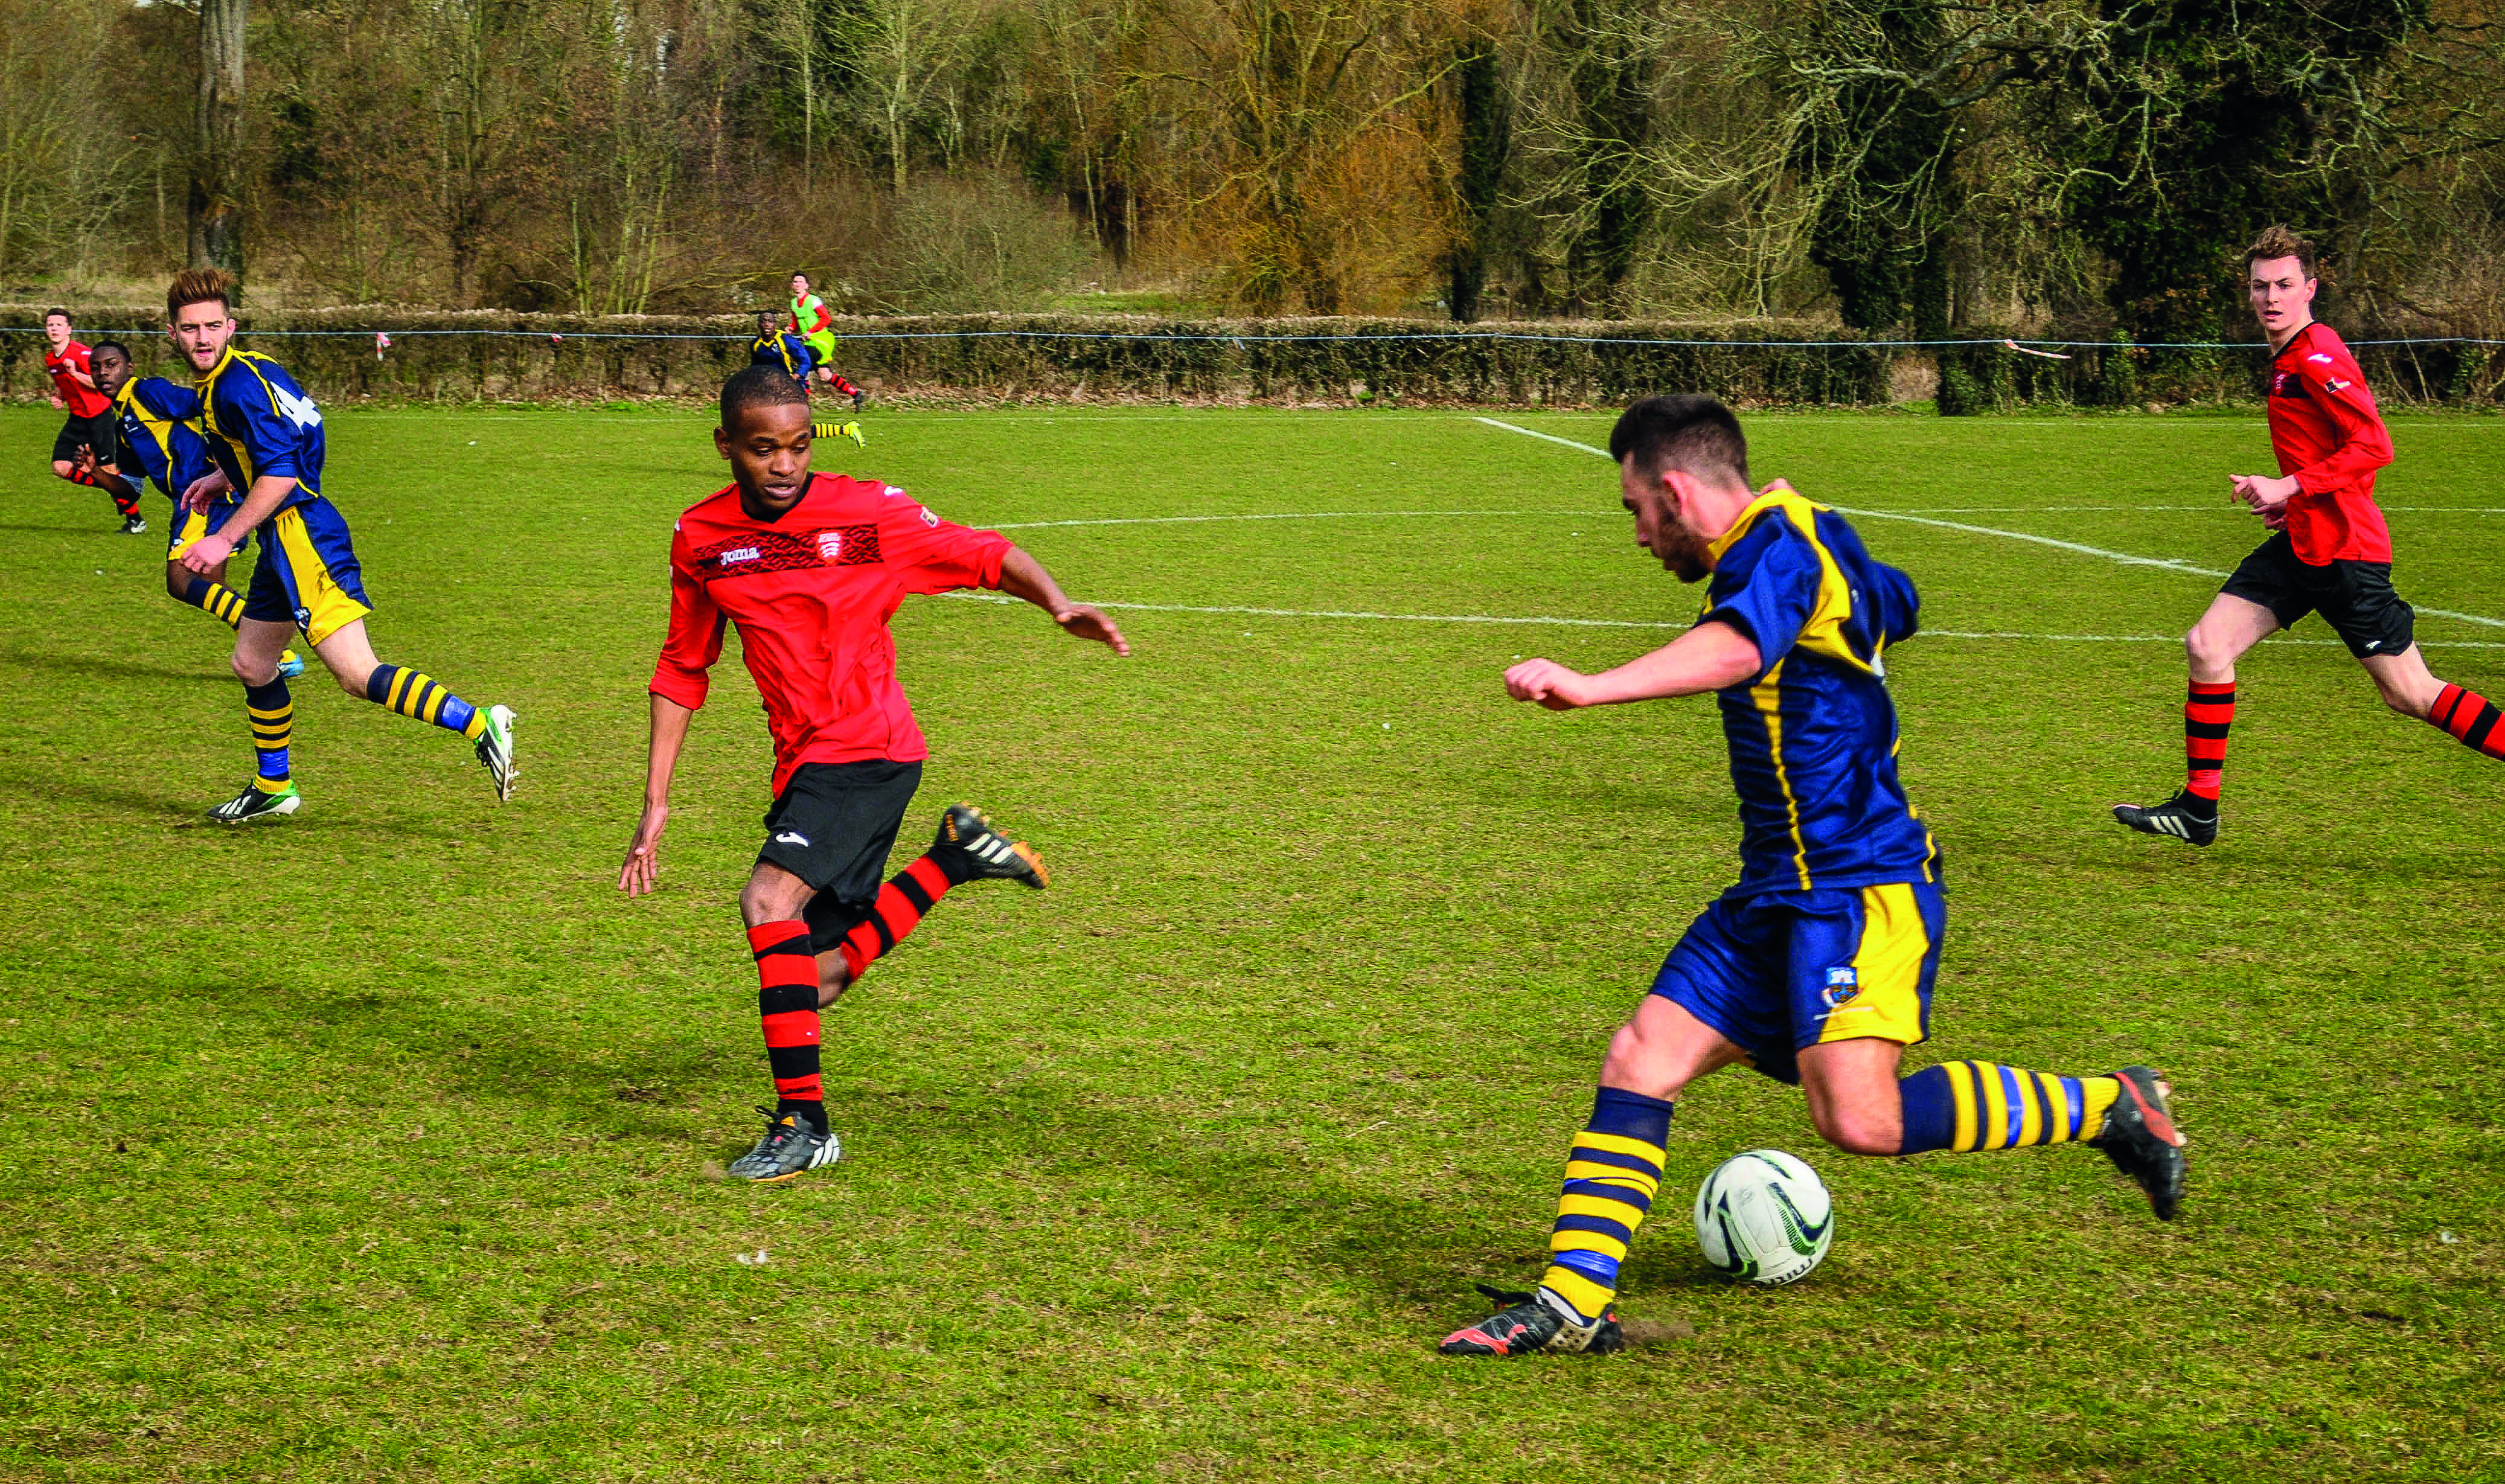 UEA Football. Photo: Billie May Jones for Concrete Photography